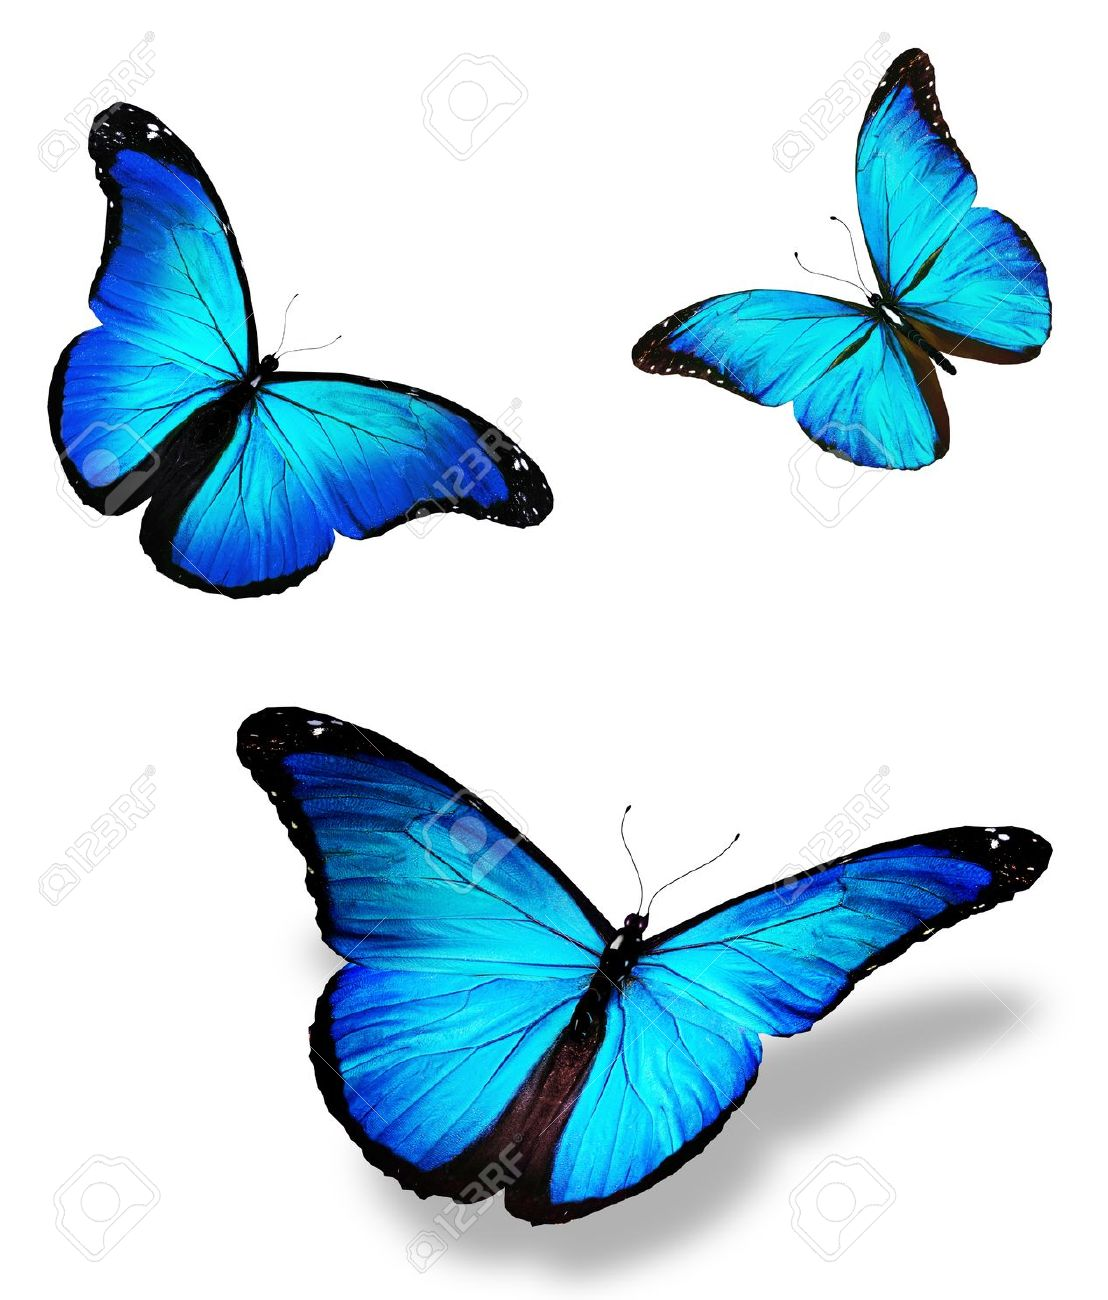 The Science Behind the Enigmatic Colors of the Butterfly ...